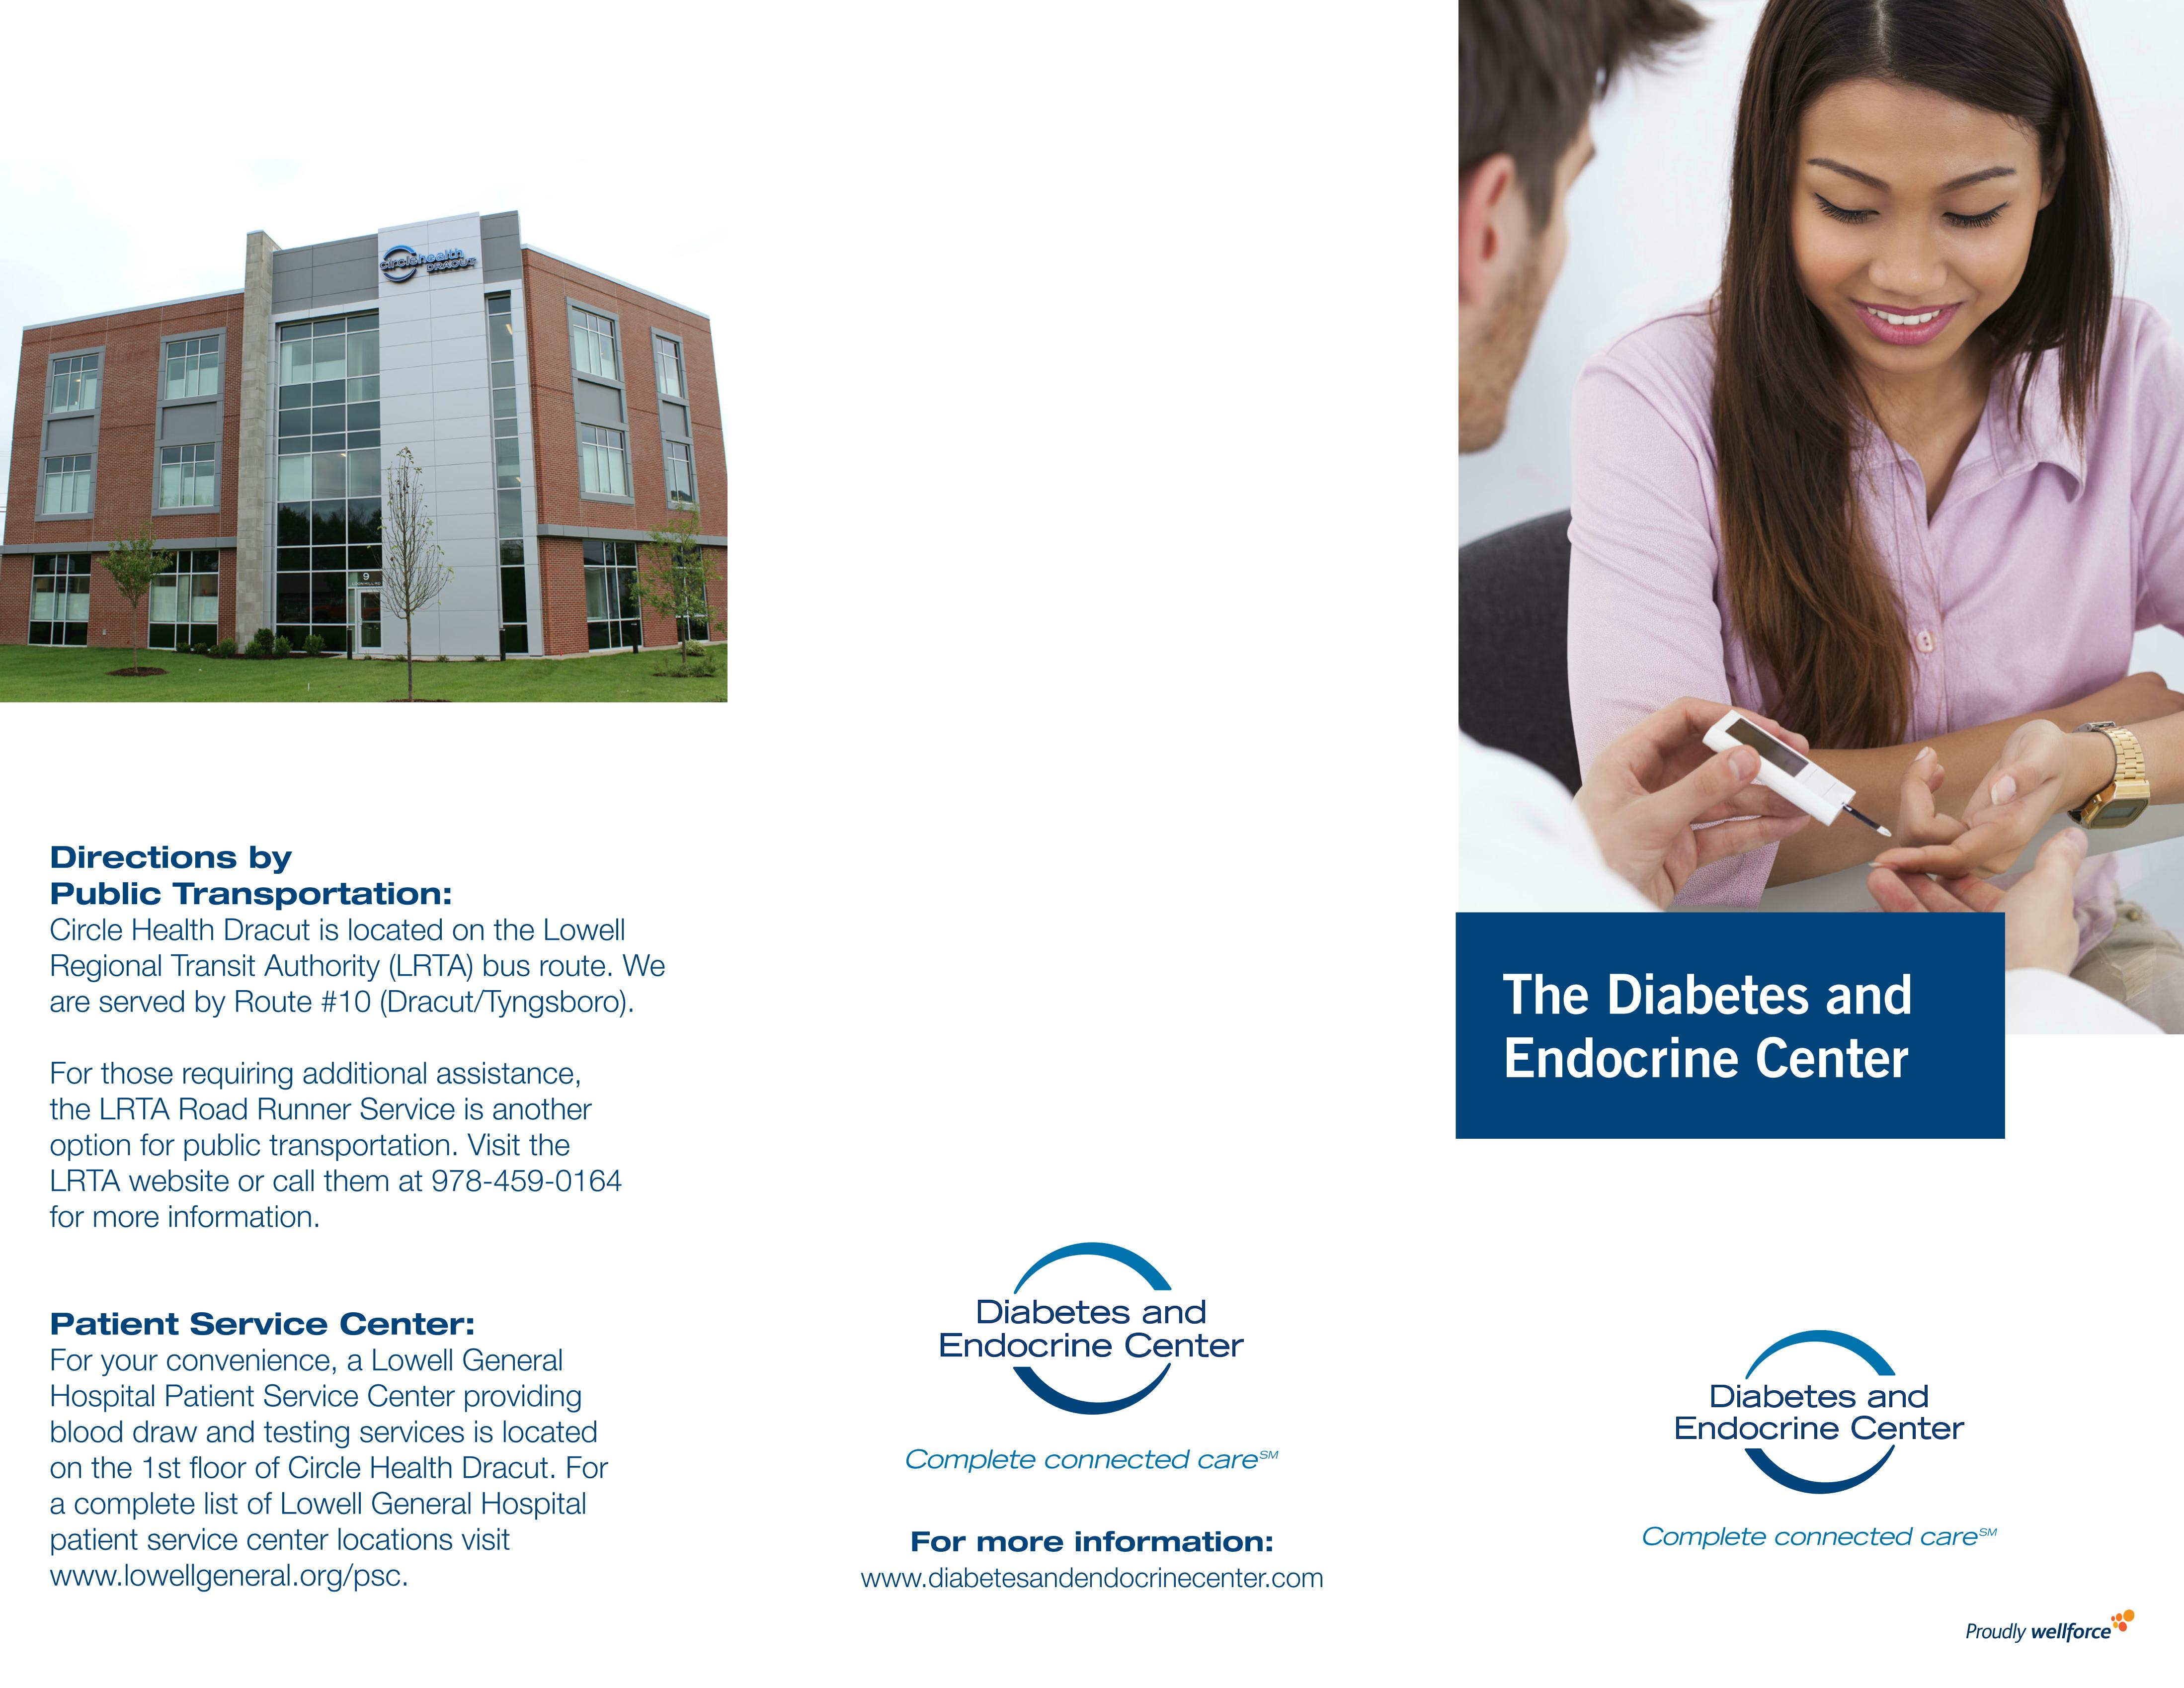 The Diabetes and Endocrine Center brochure